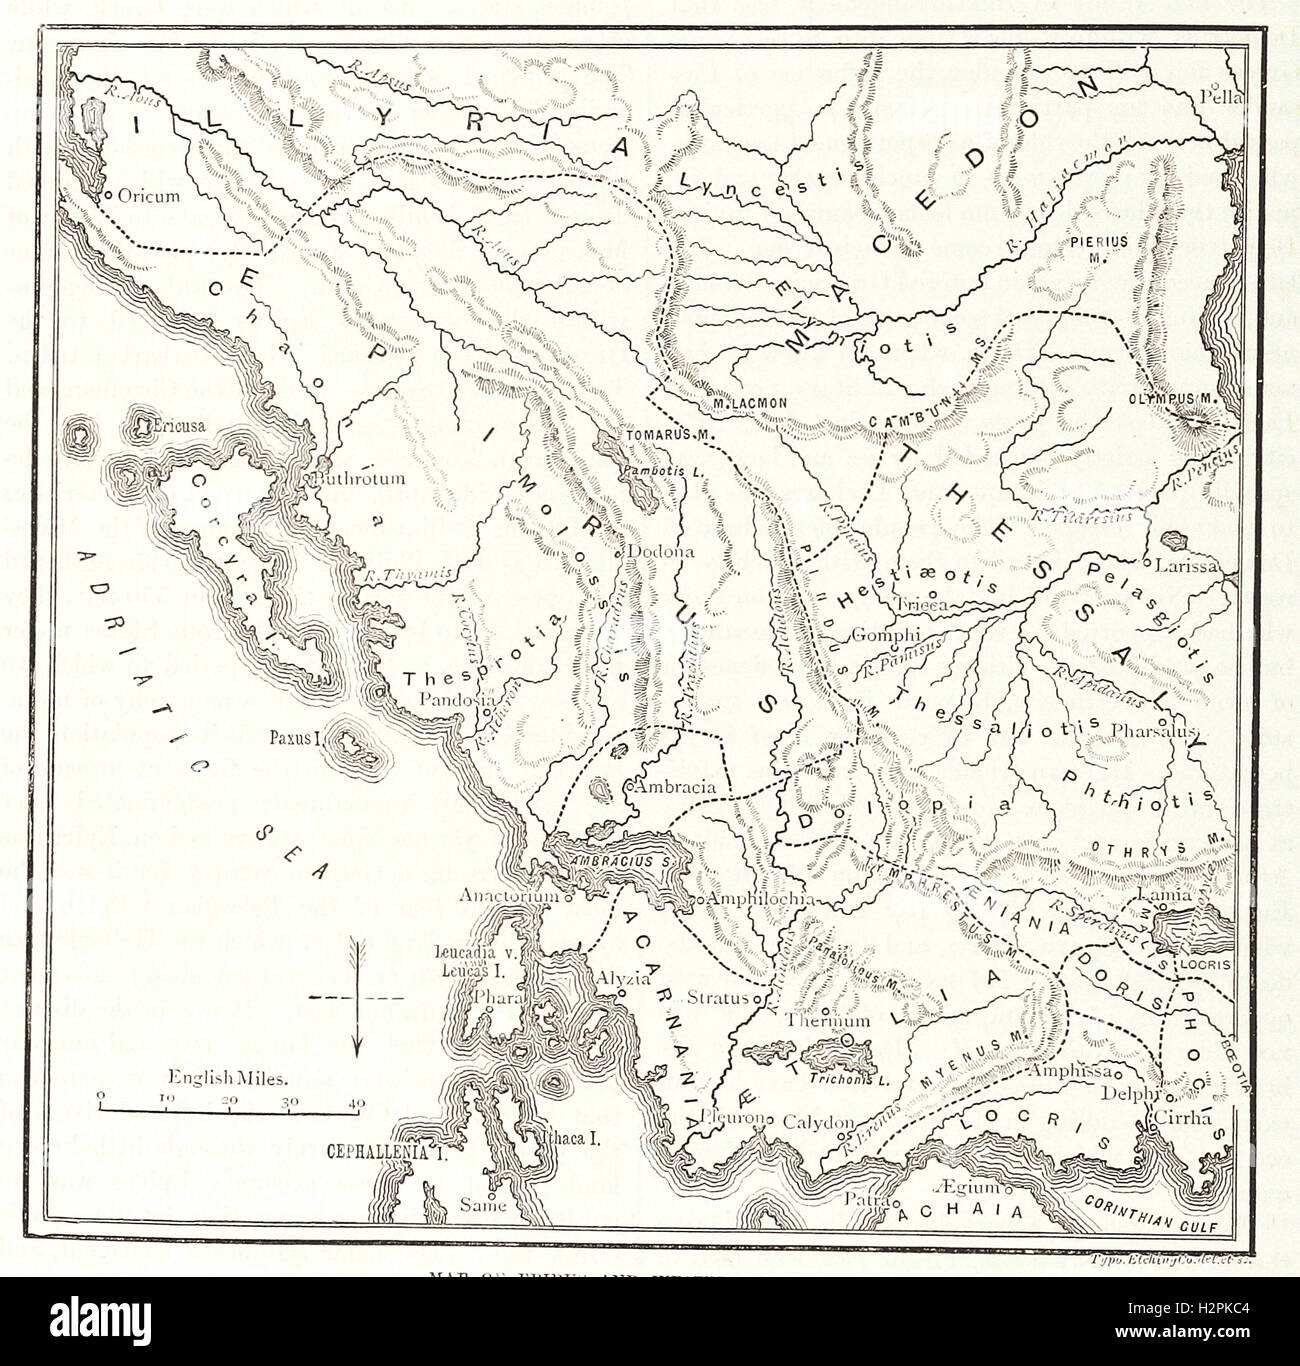 MAP OF EPIRUS AND WESTERN GREECE. - from 'Cassell's Illustrated Universal History' - 1882 - Stock Image